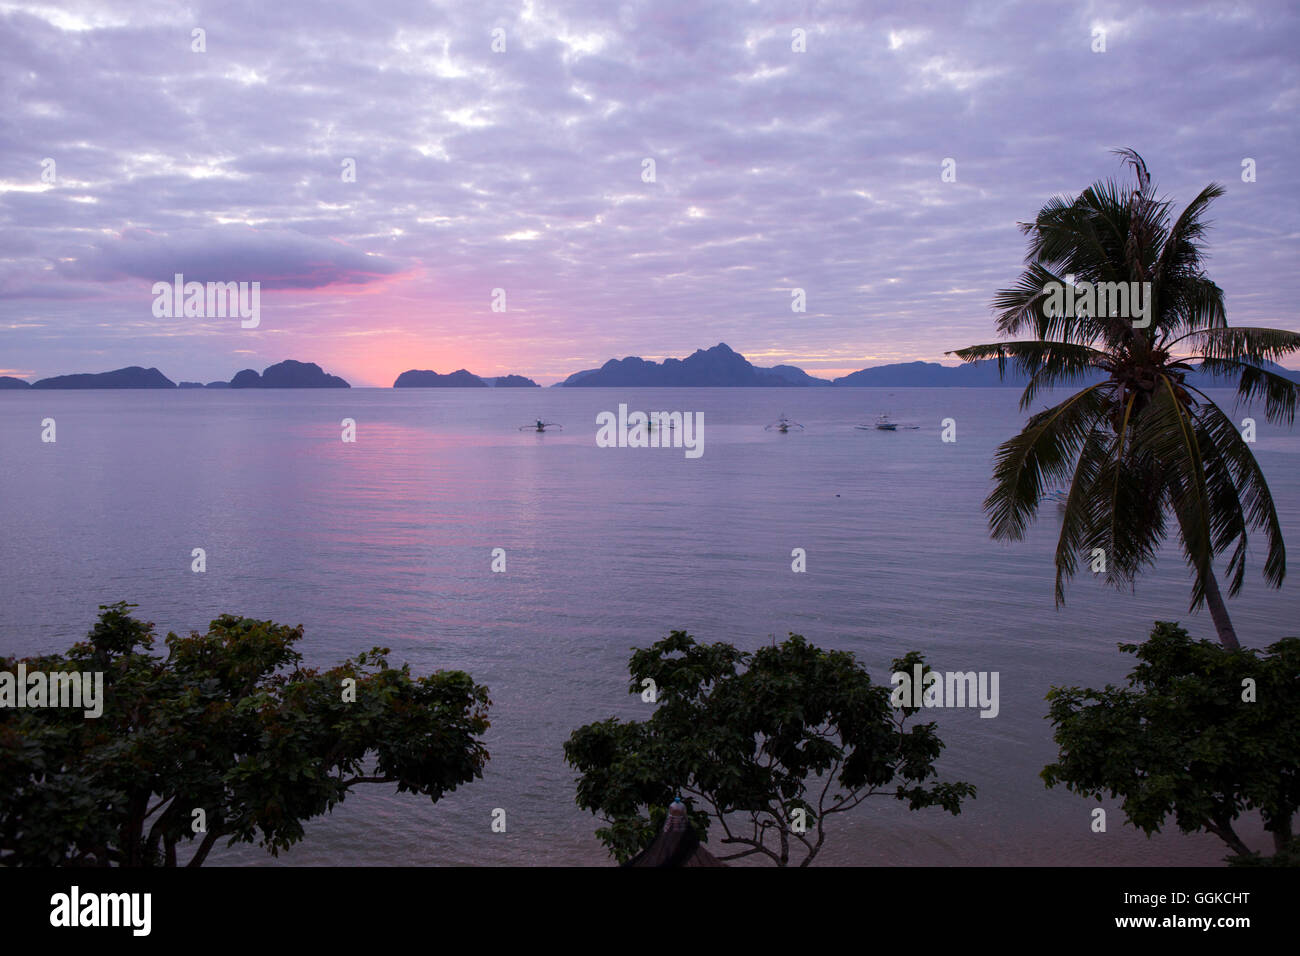 Sunset in the Archipelago Bacuit near El Nido, Palawan Island, South China Sea, Philippines, Asia - Stock Image